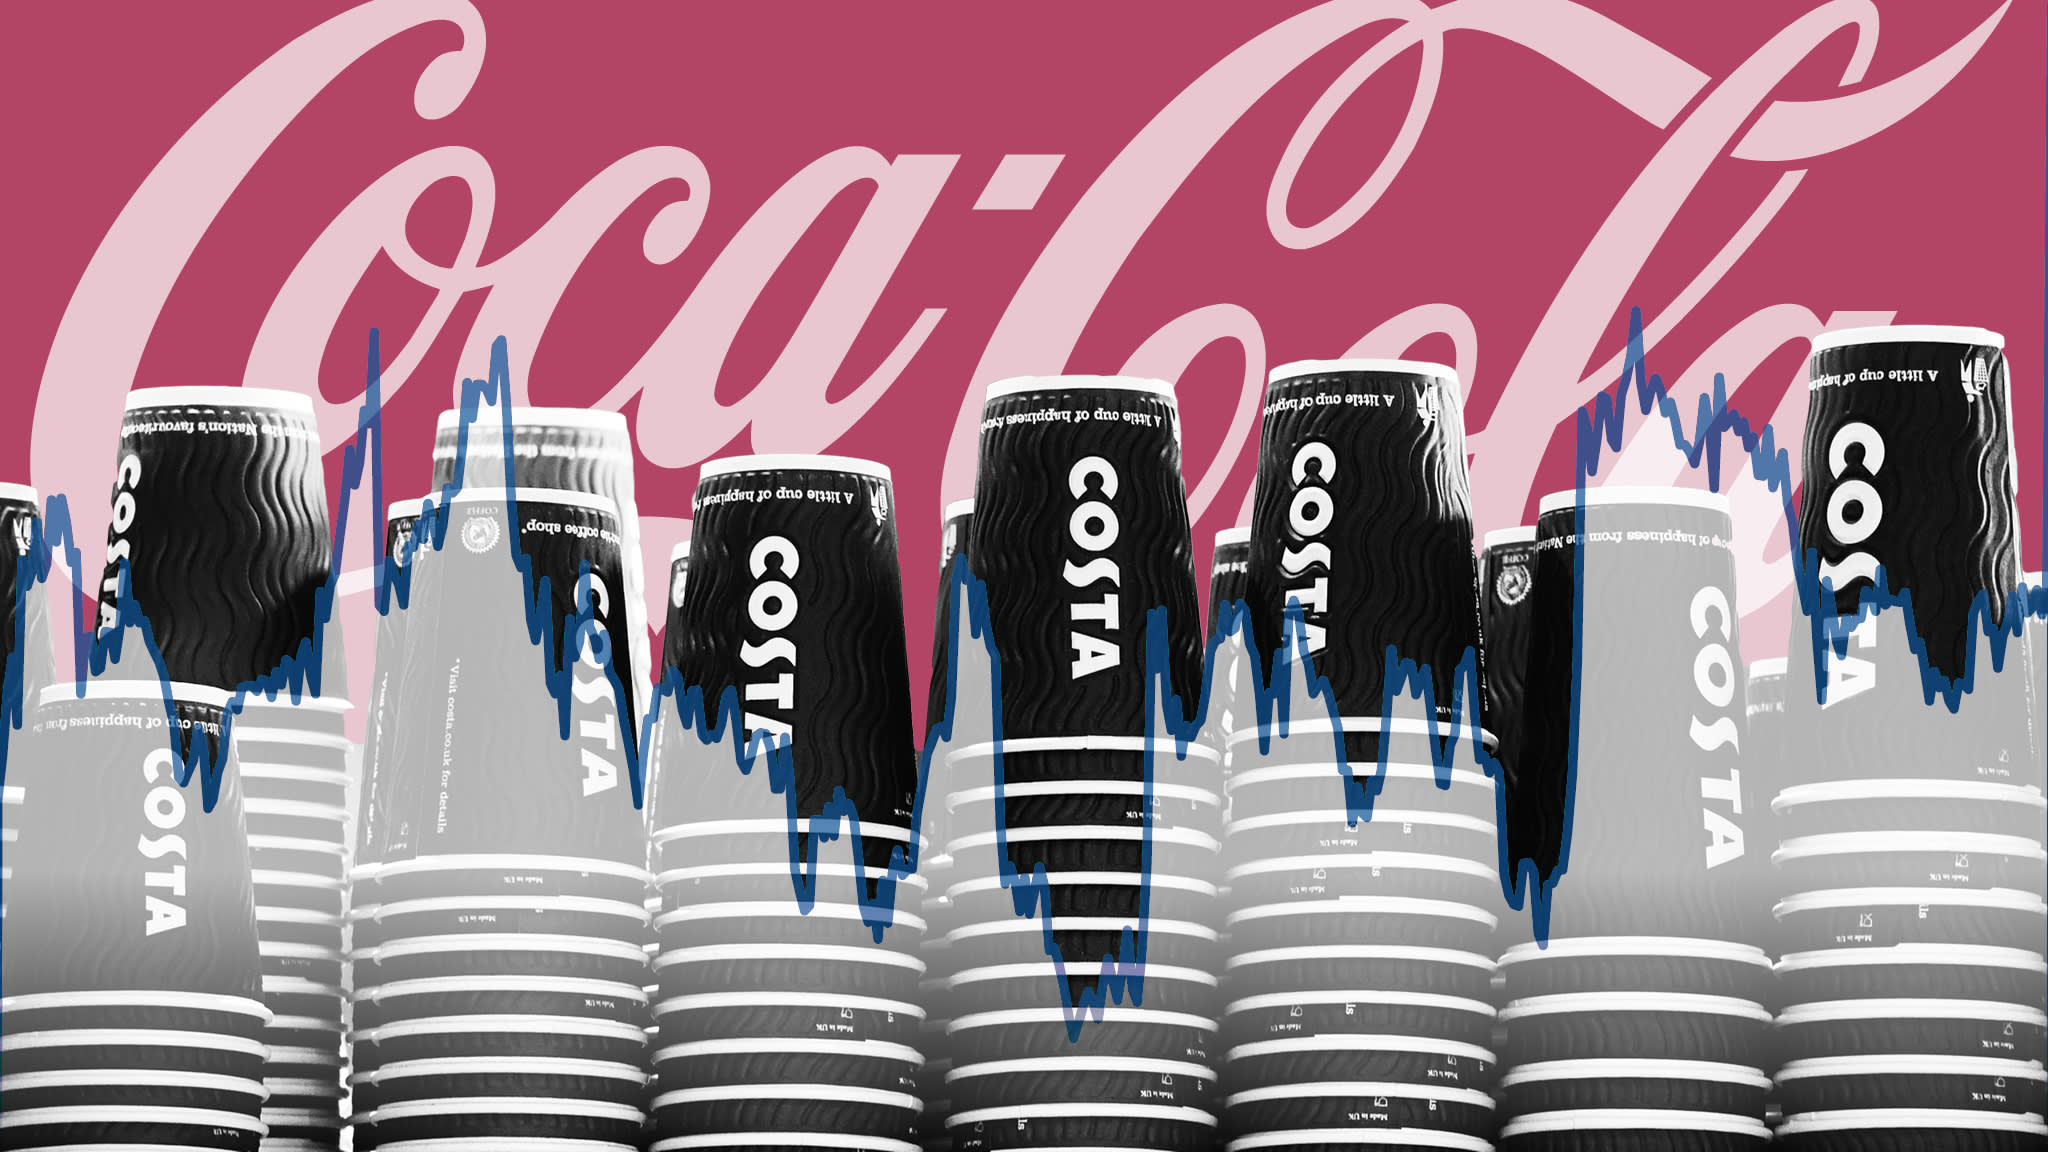 Coca-Cola salivates over Costa expansion opportunity